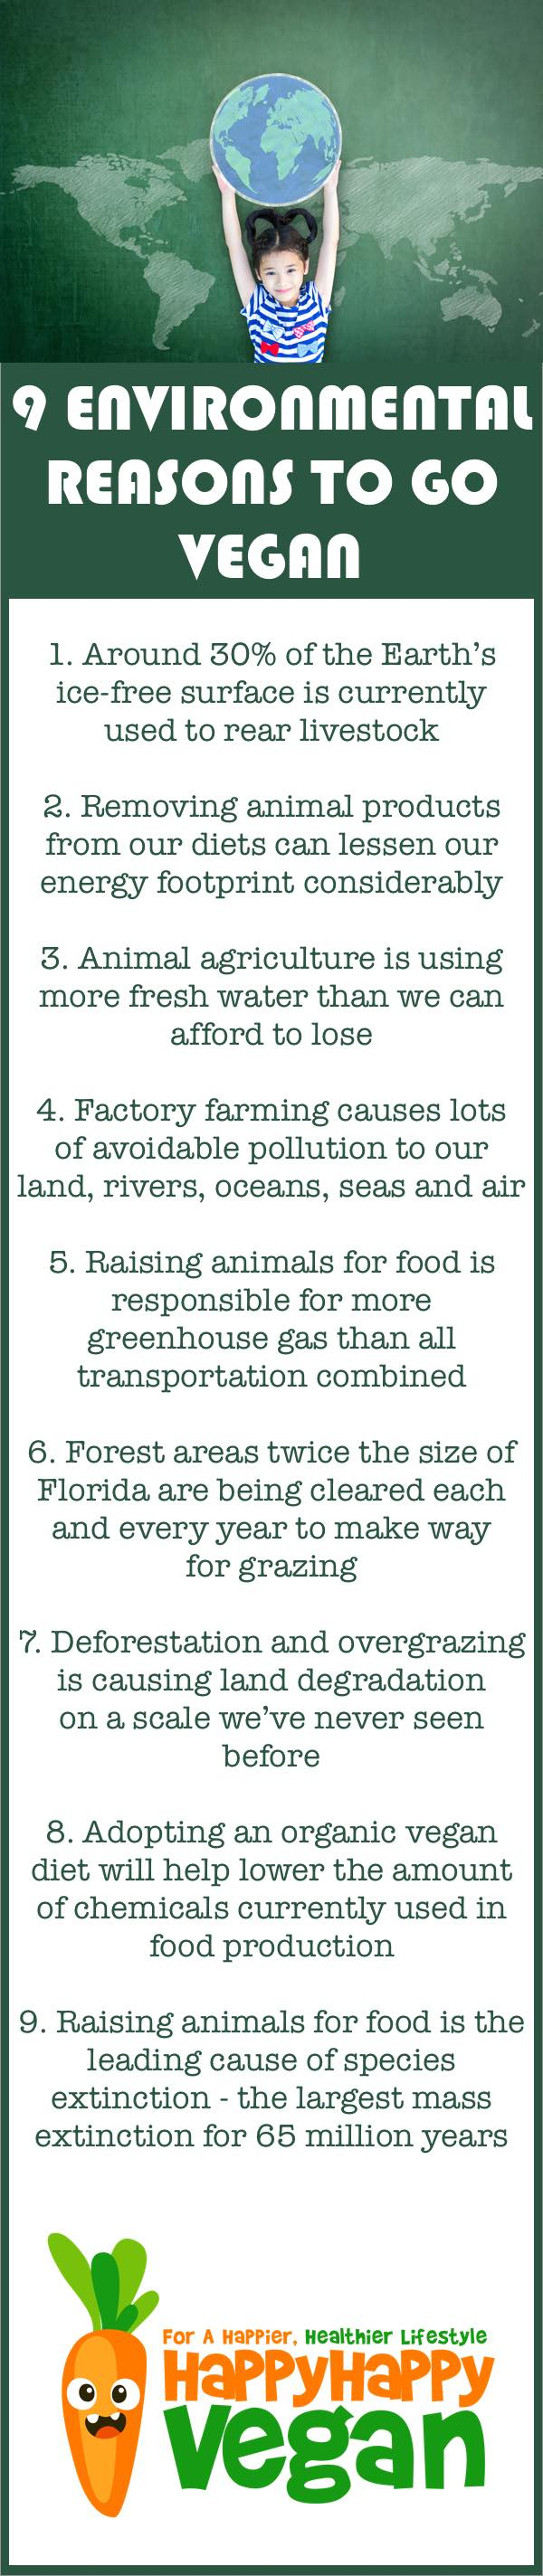 Environmental reasons to go vegan.